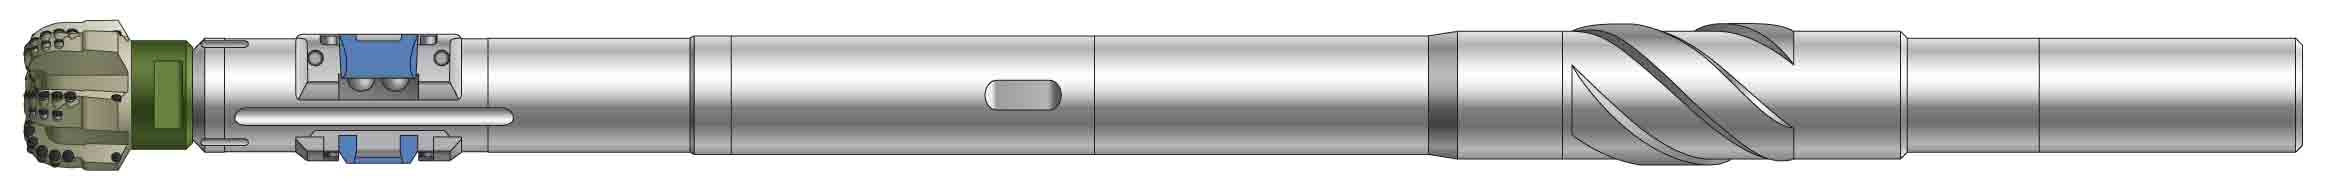 A simplified side-view rendering of a shortened BHA incorporating a PowerDrive ICE RSS and a PDC bit